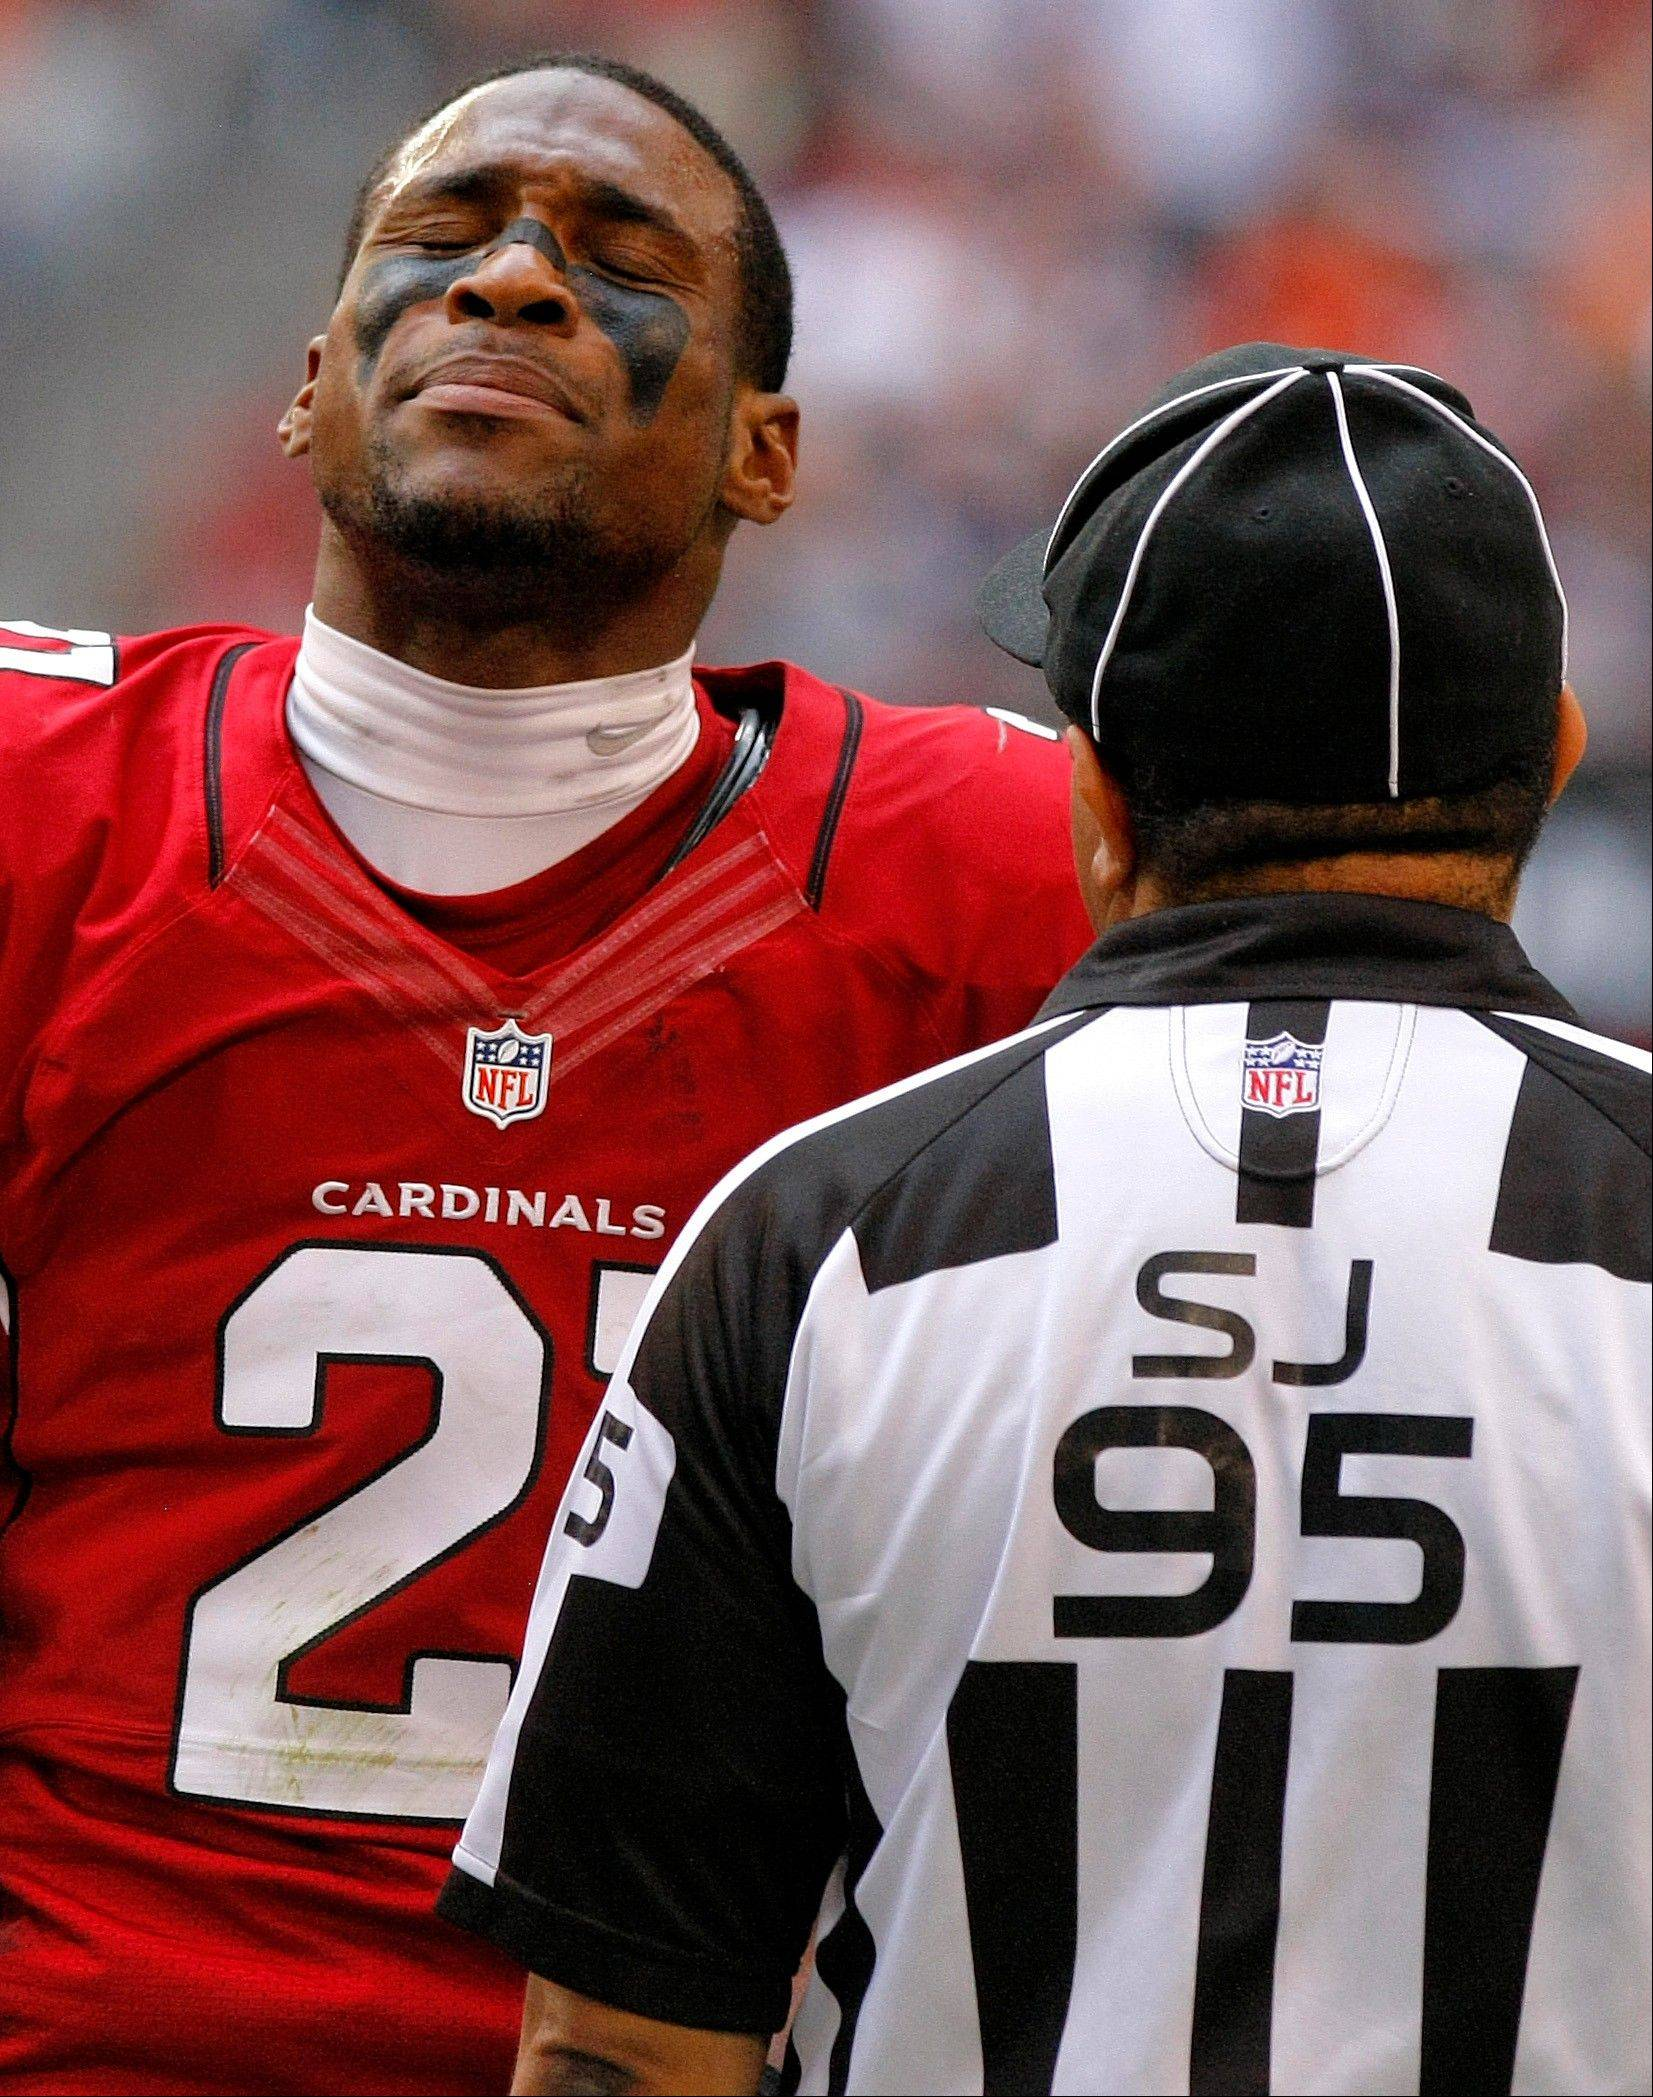 Arizona Cardinals cornerback Patrick Peterson reacts to side judge James Coleman's call during the first half.